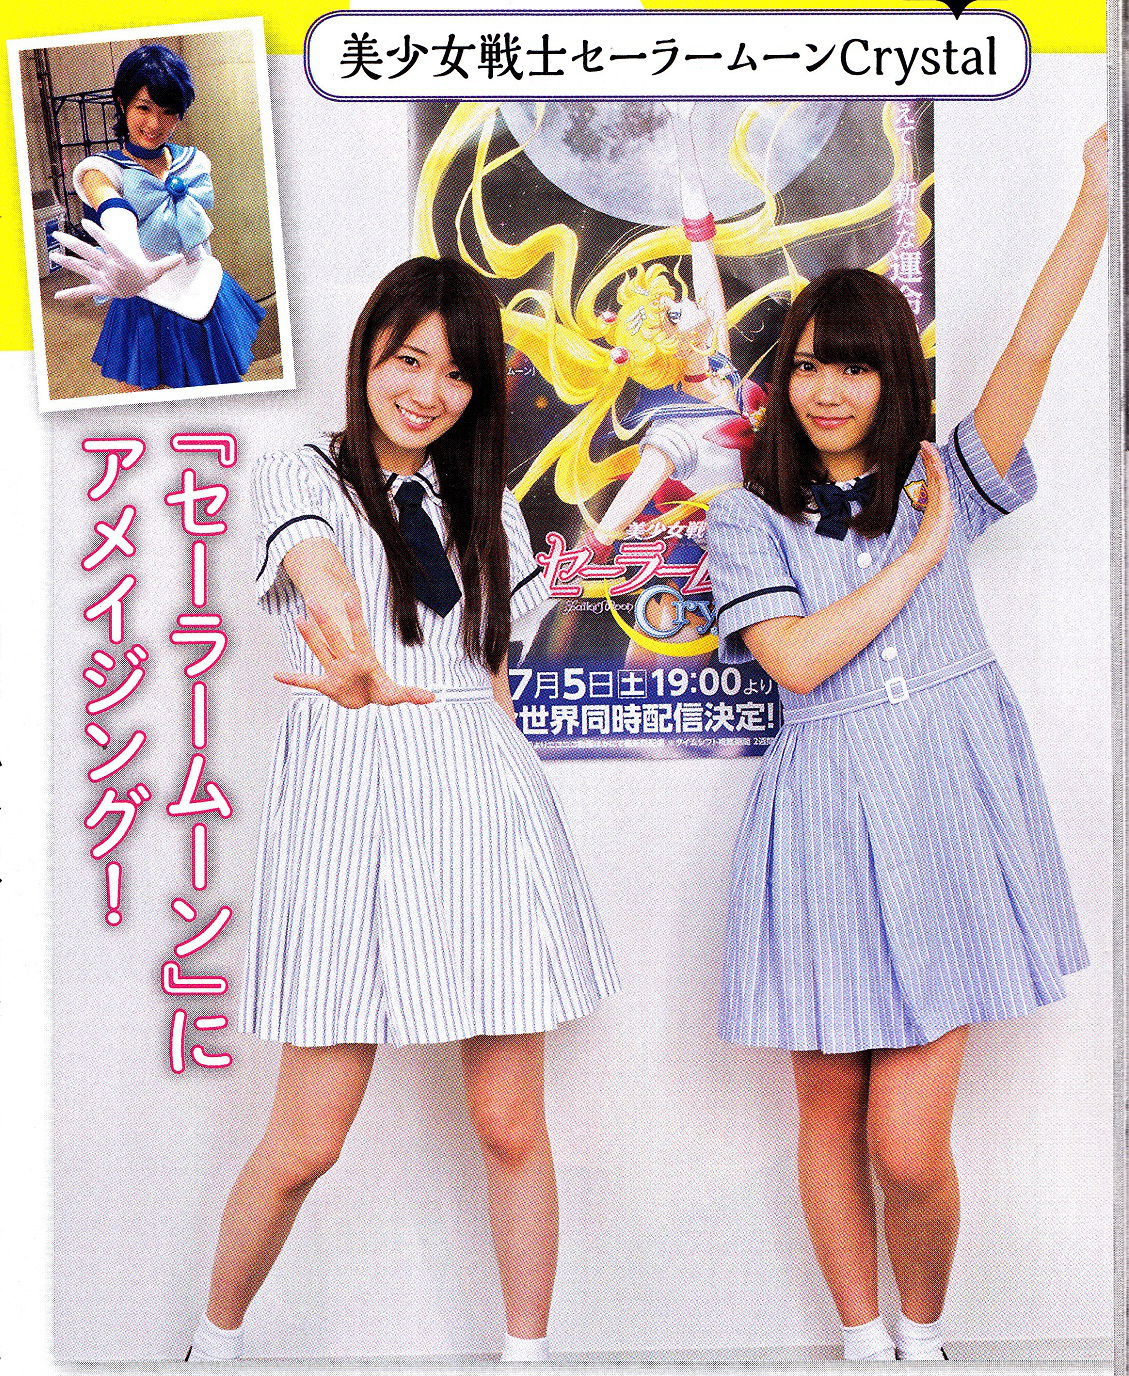 Picture of Kazumi Takayama and Hina Kawago from Sailor Moon Crystal article in EX Taishu magazine September 2014